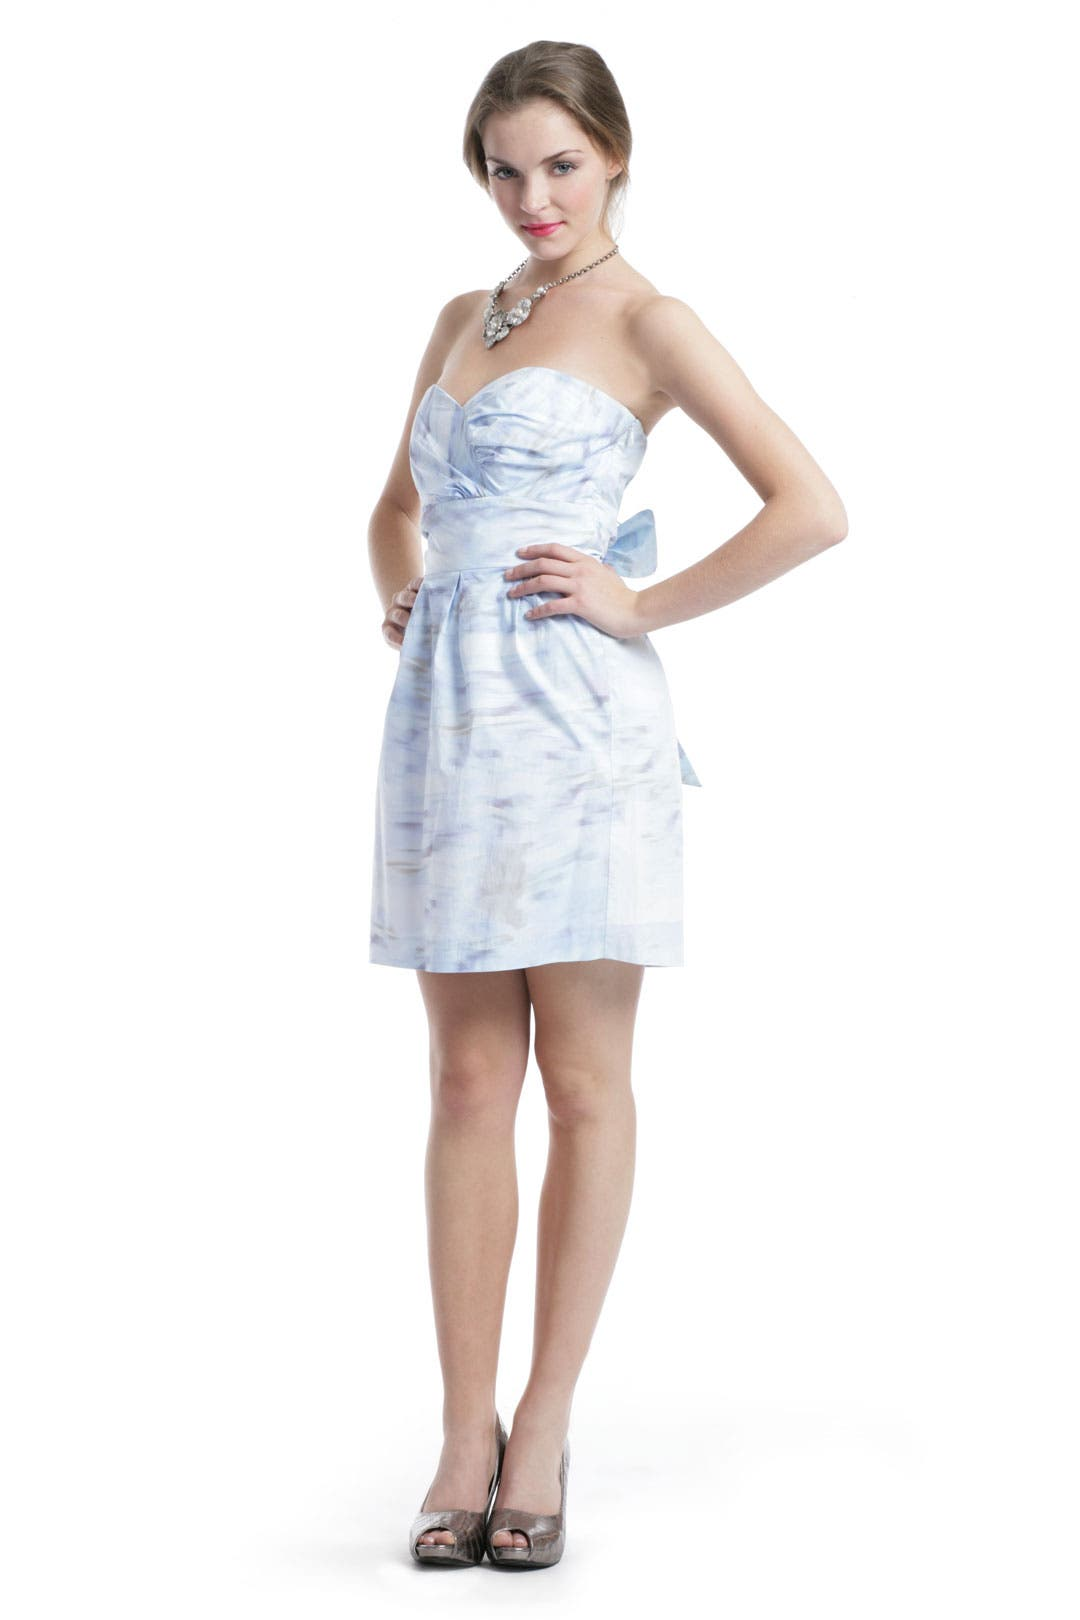 Icebreaker Dress by Mark & James by Badgley Mischka